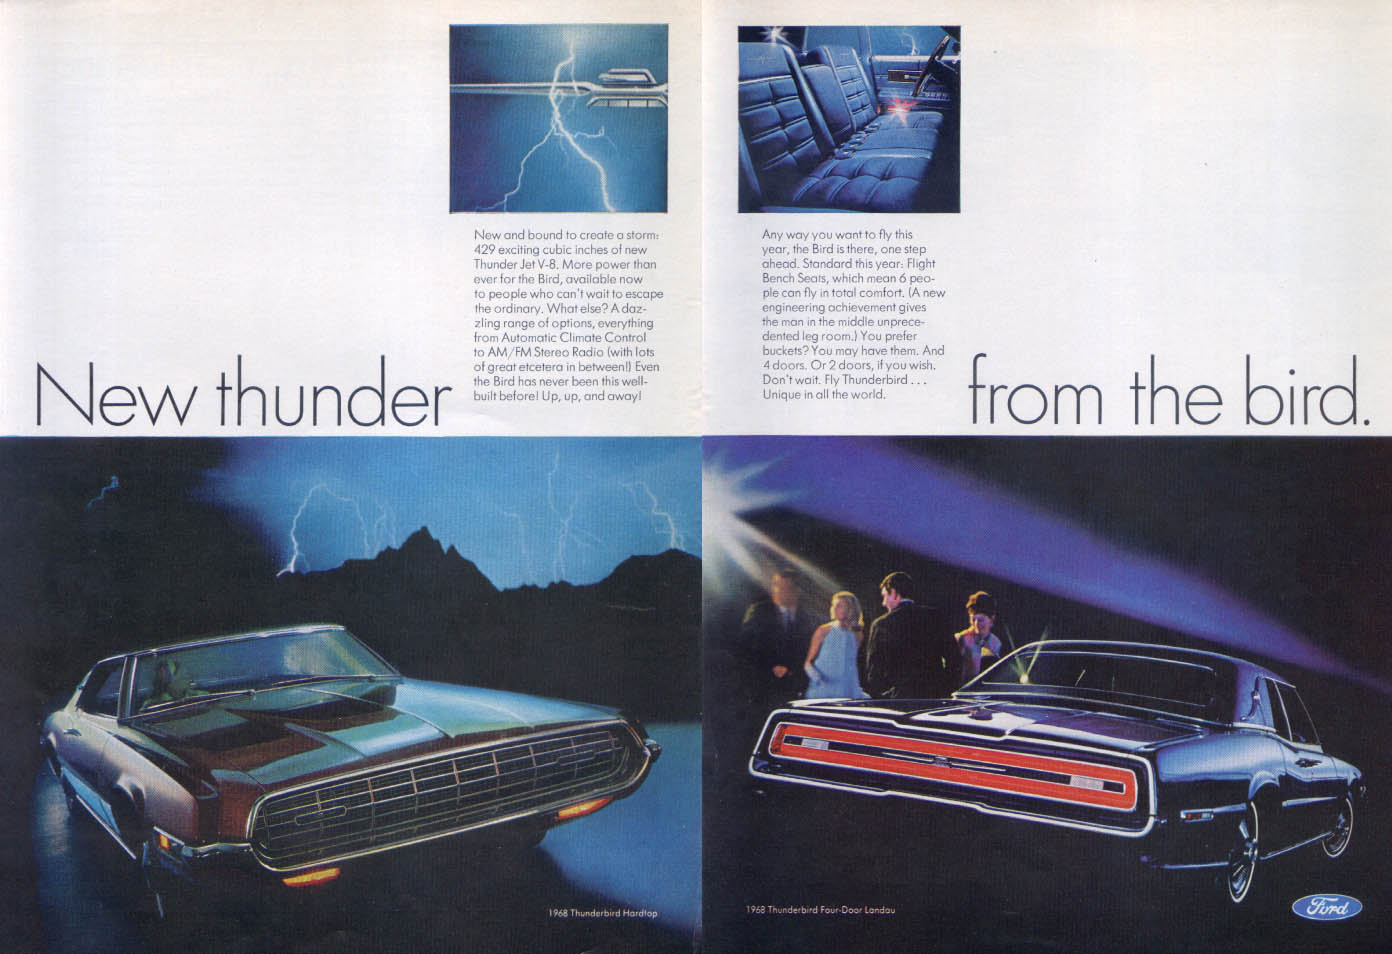 Image for Ford Thunderbird New thunder from the bird ad 1968